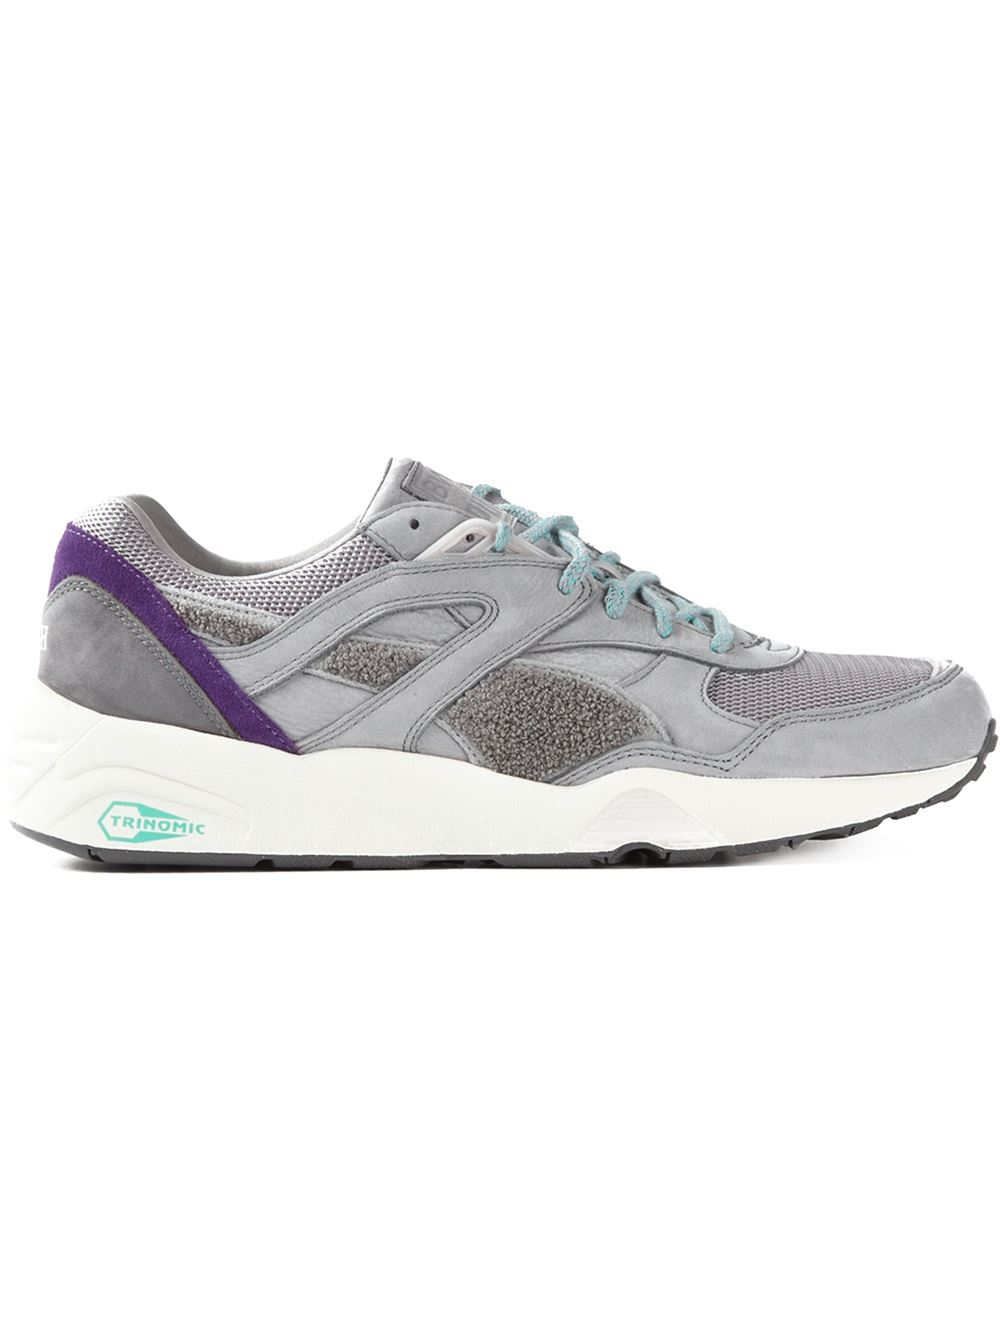 puma bwgh x 39 trinomic r698 39 sneakers in gray for men grey lyst. Black Bedroom Furniture Sets. Home Design Ideas